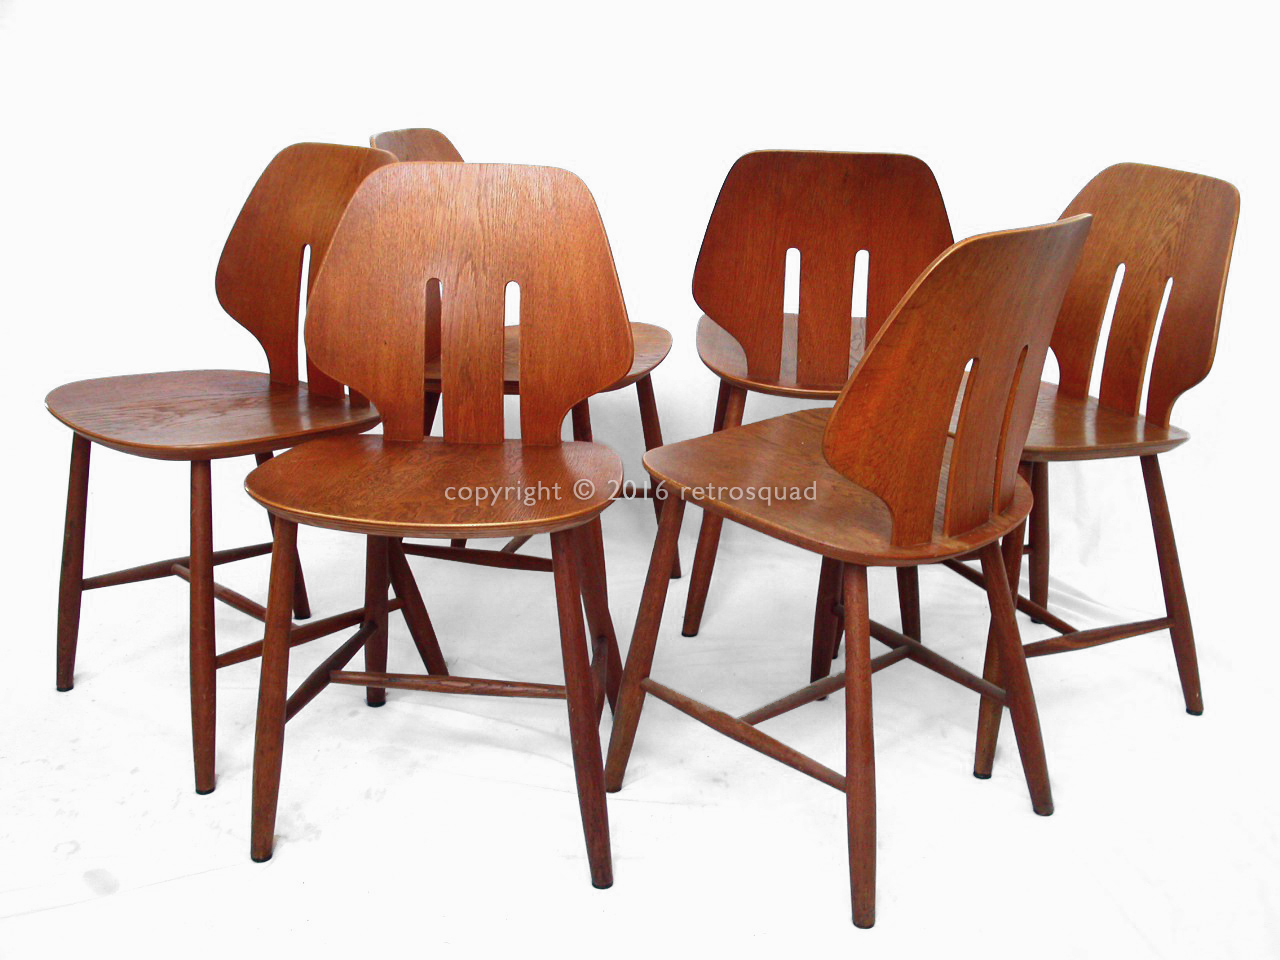 6 Modern Dining Chairs By Ejvind A. Johanss For FDB Mobler Vintage 1960 01